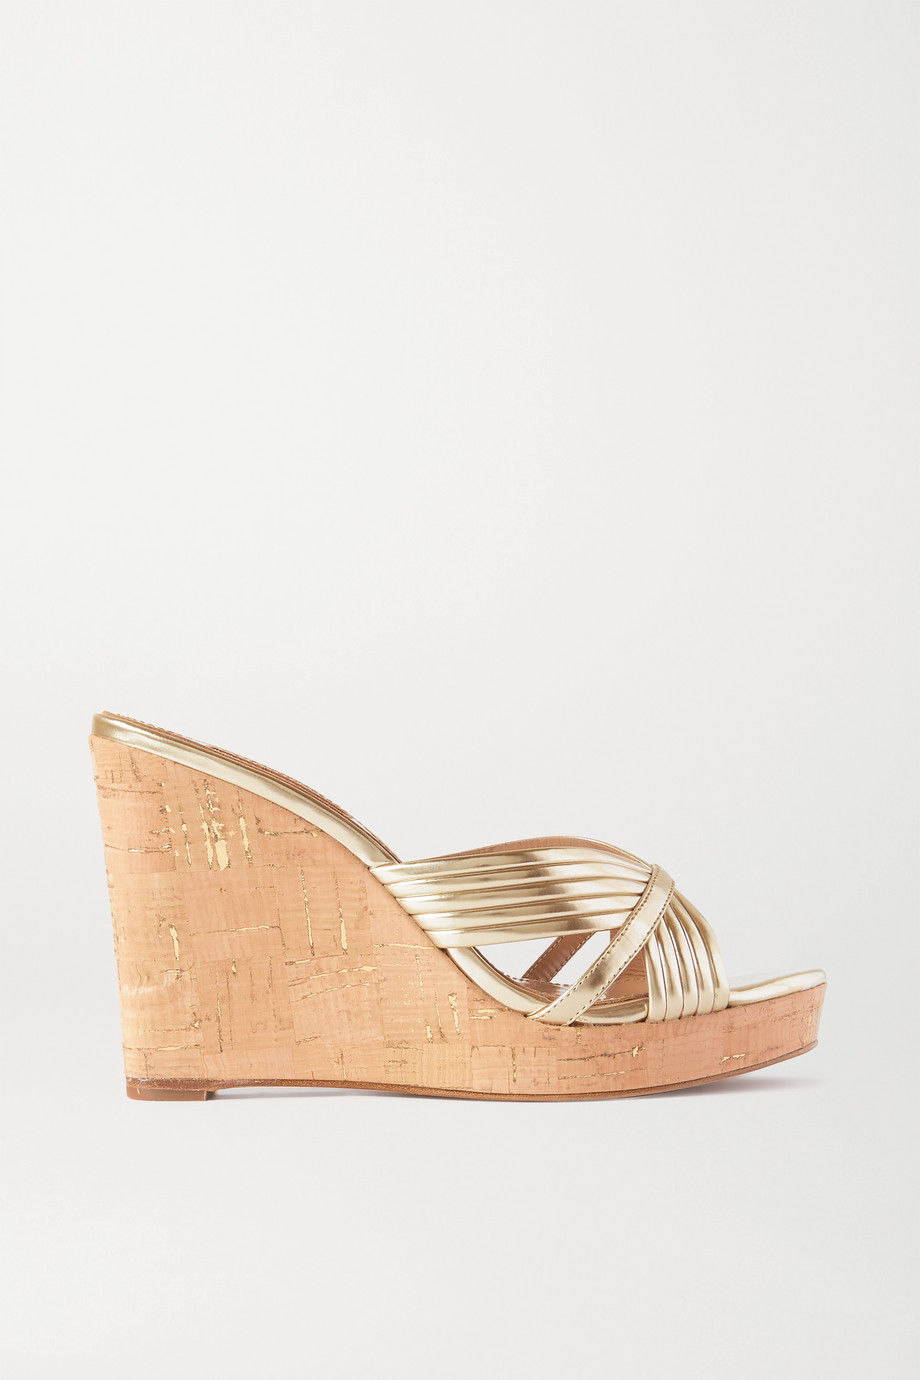 Aquazzura Sundance 85 metallic leather wedge sandals